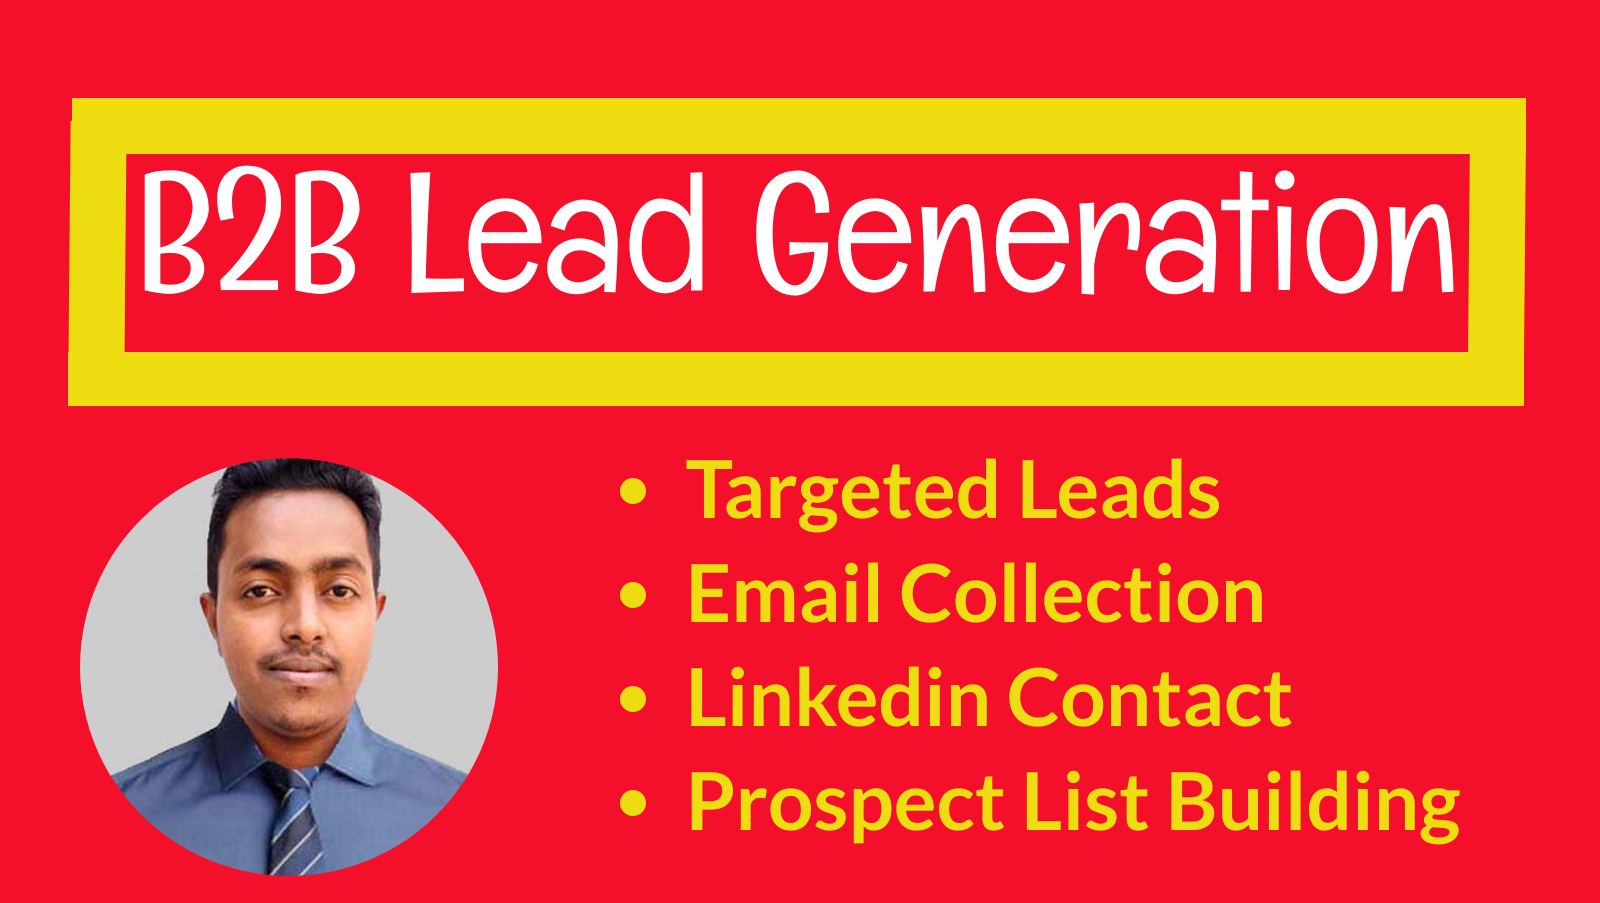 I will linkedin lead generation, data entry and list building